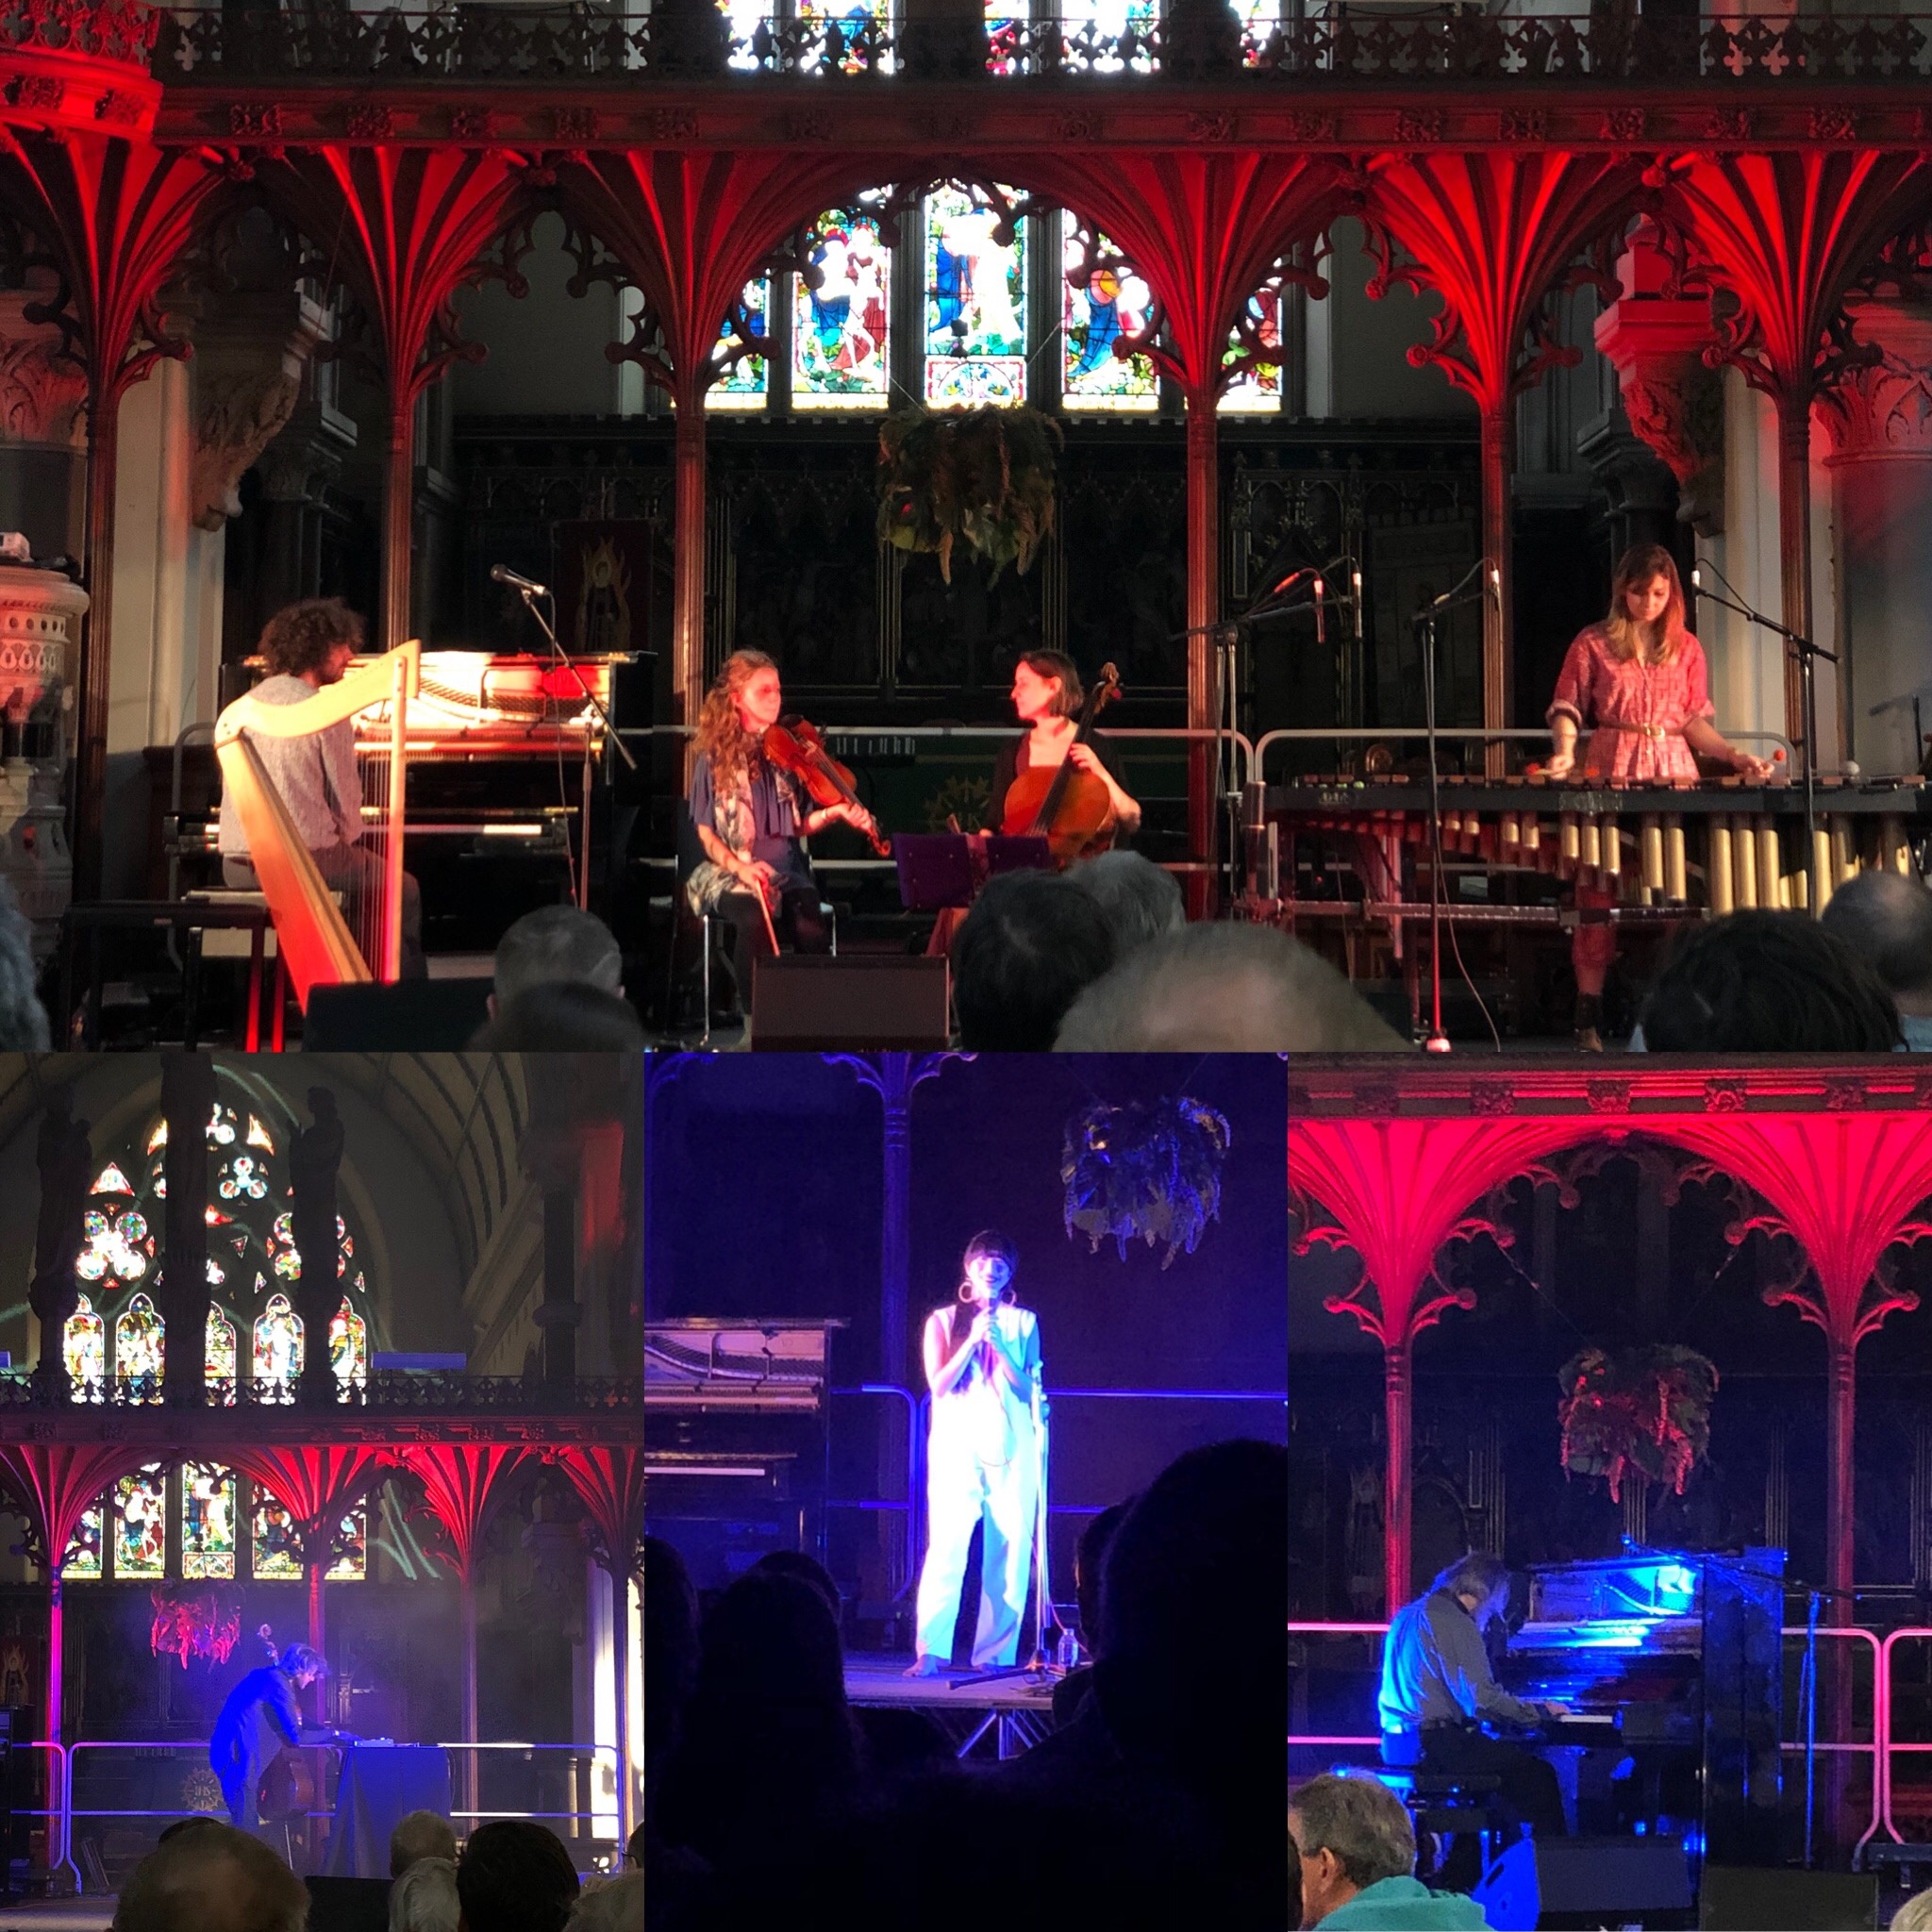 Spindle Ensemble, Sebastian Plano, Hatis Noit and Lubomyr Melnyk At The Hidden Notes Festival At St Laurence Church, Stroud